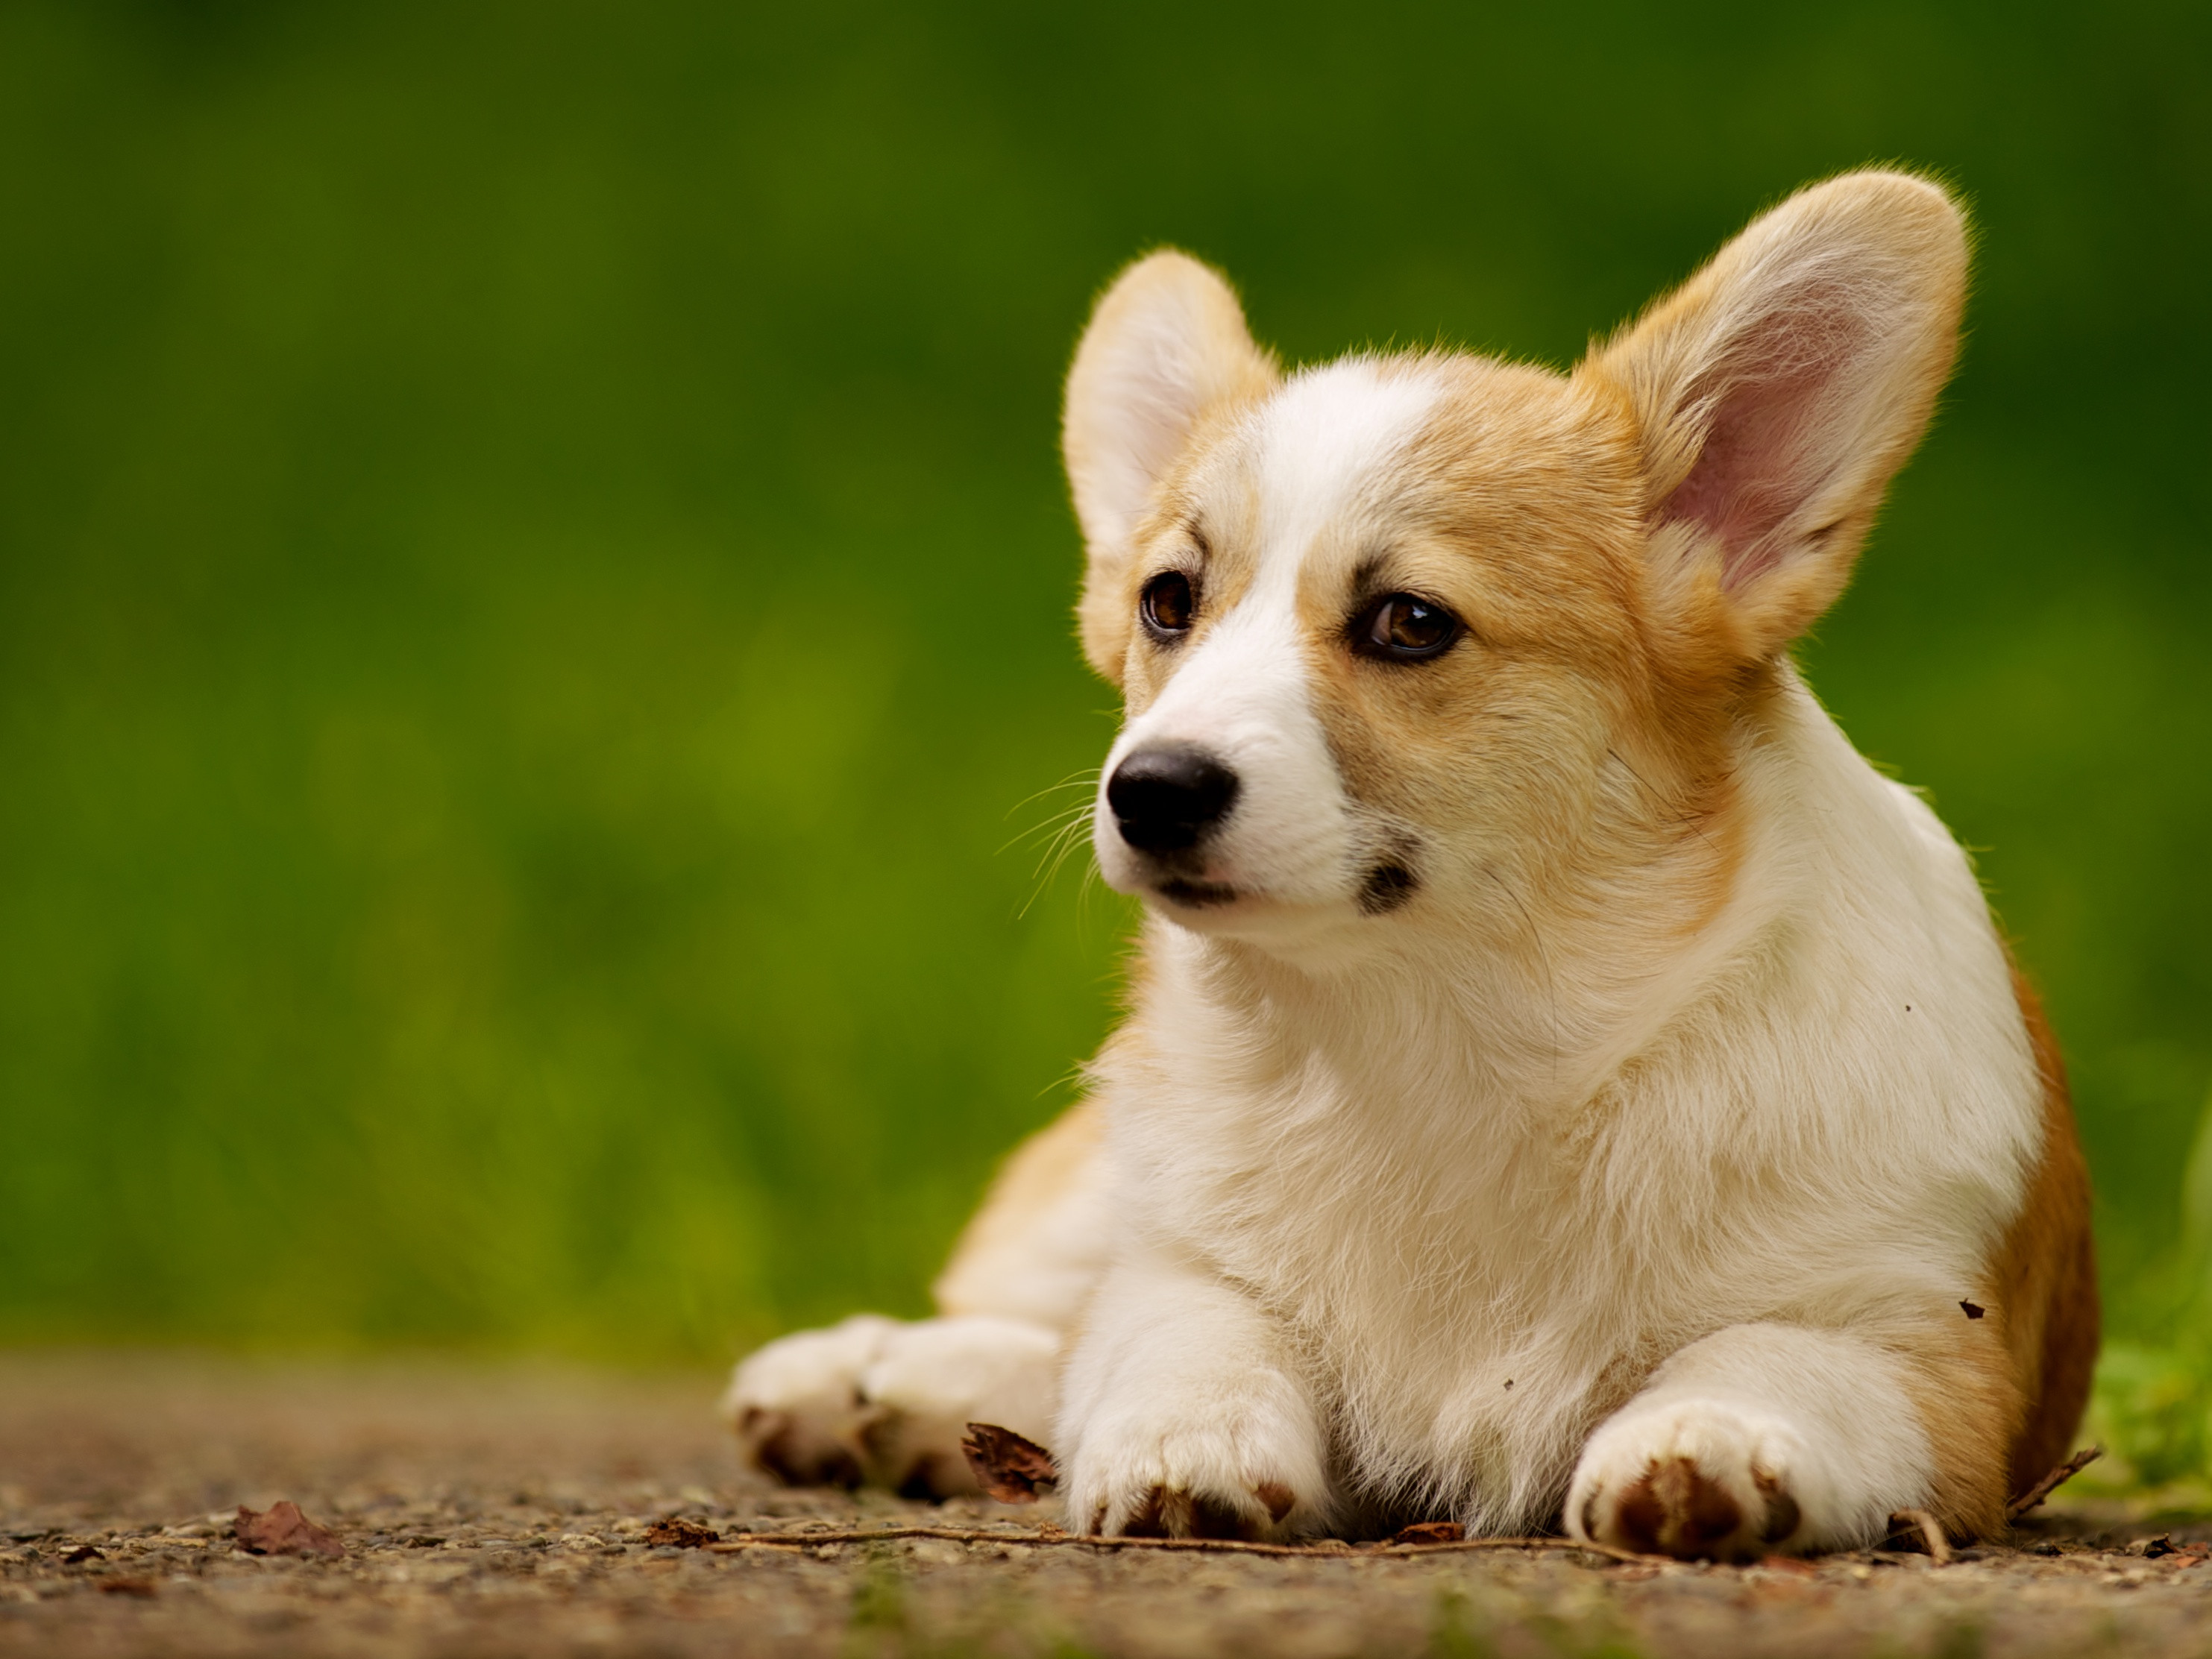 Small Cute Puppy Wallpapers Guy Makes His Dog Do The Donald Trump Loyalty Salute The